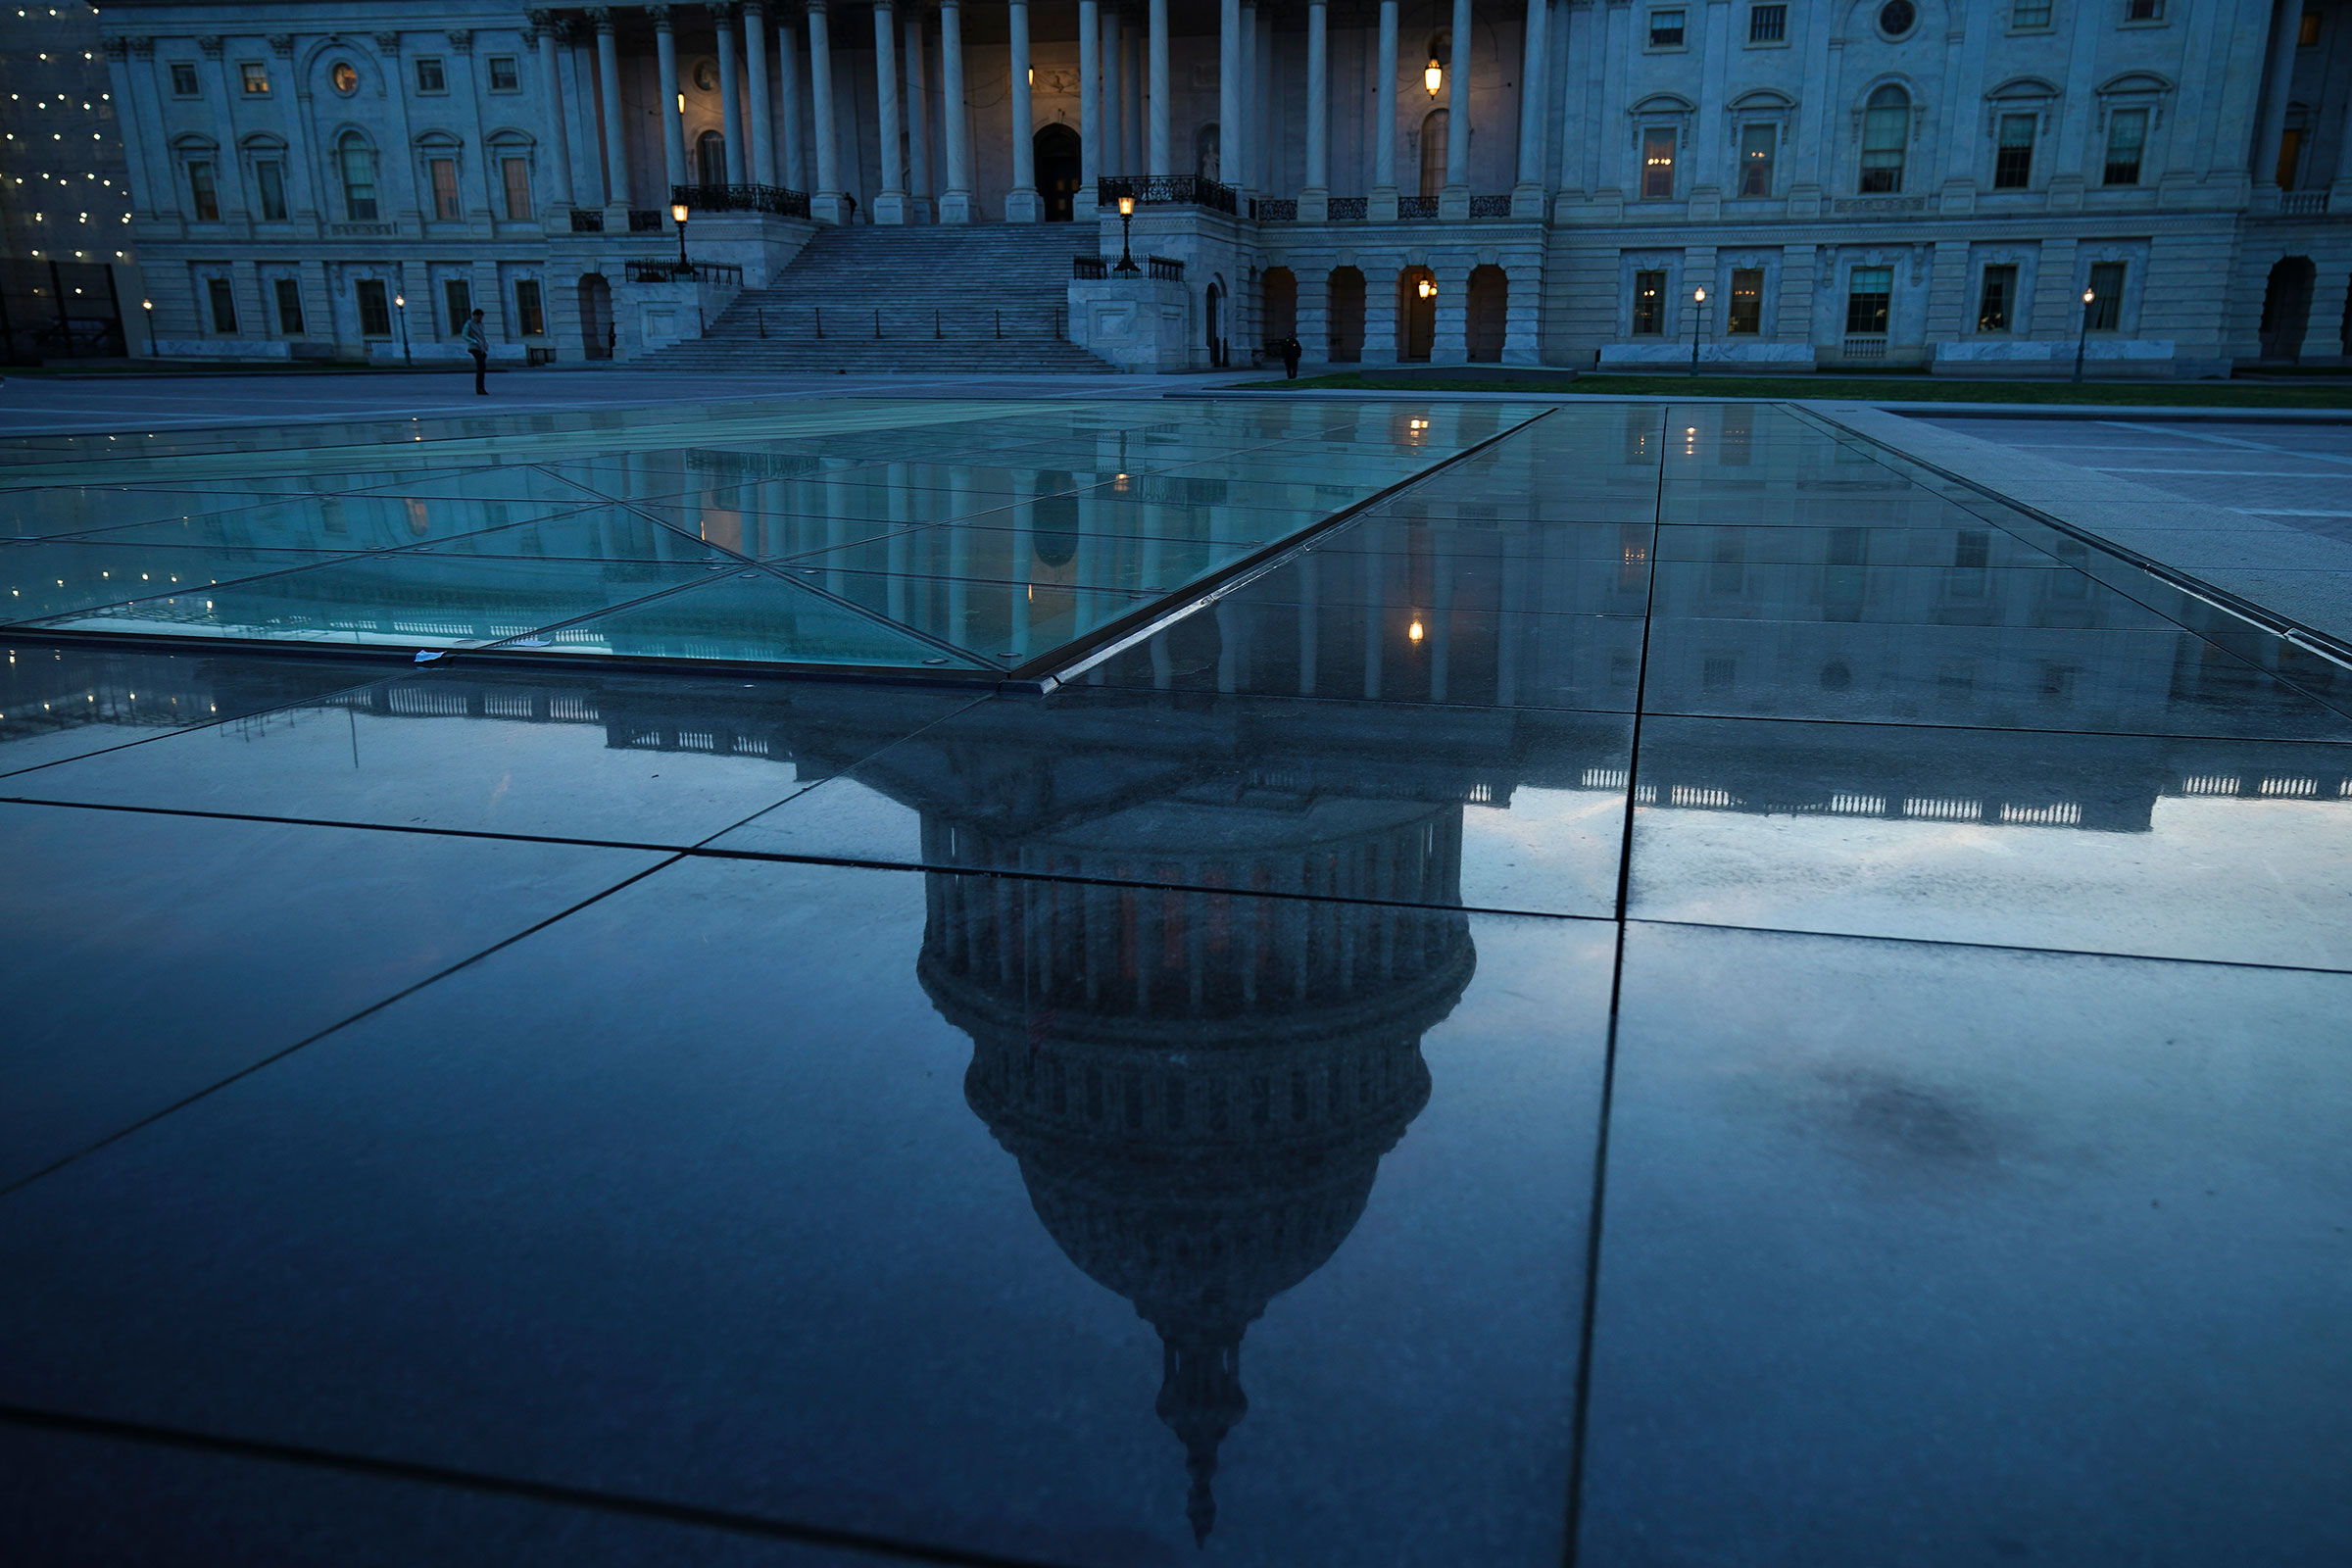 The U.S. Capitol dome is reflected on the plaza of the East Front of the U.S. Capitol, in Washington, DC on April 17, 2019.